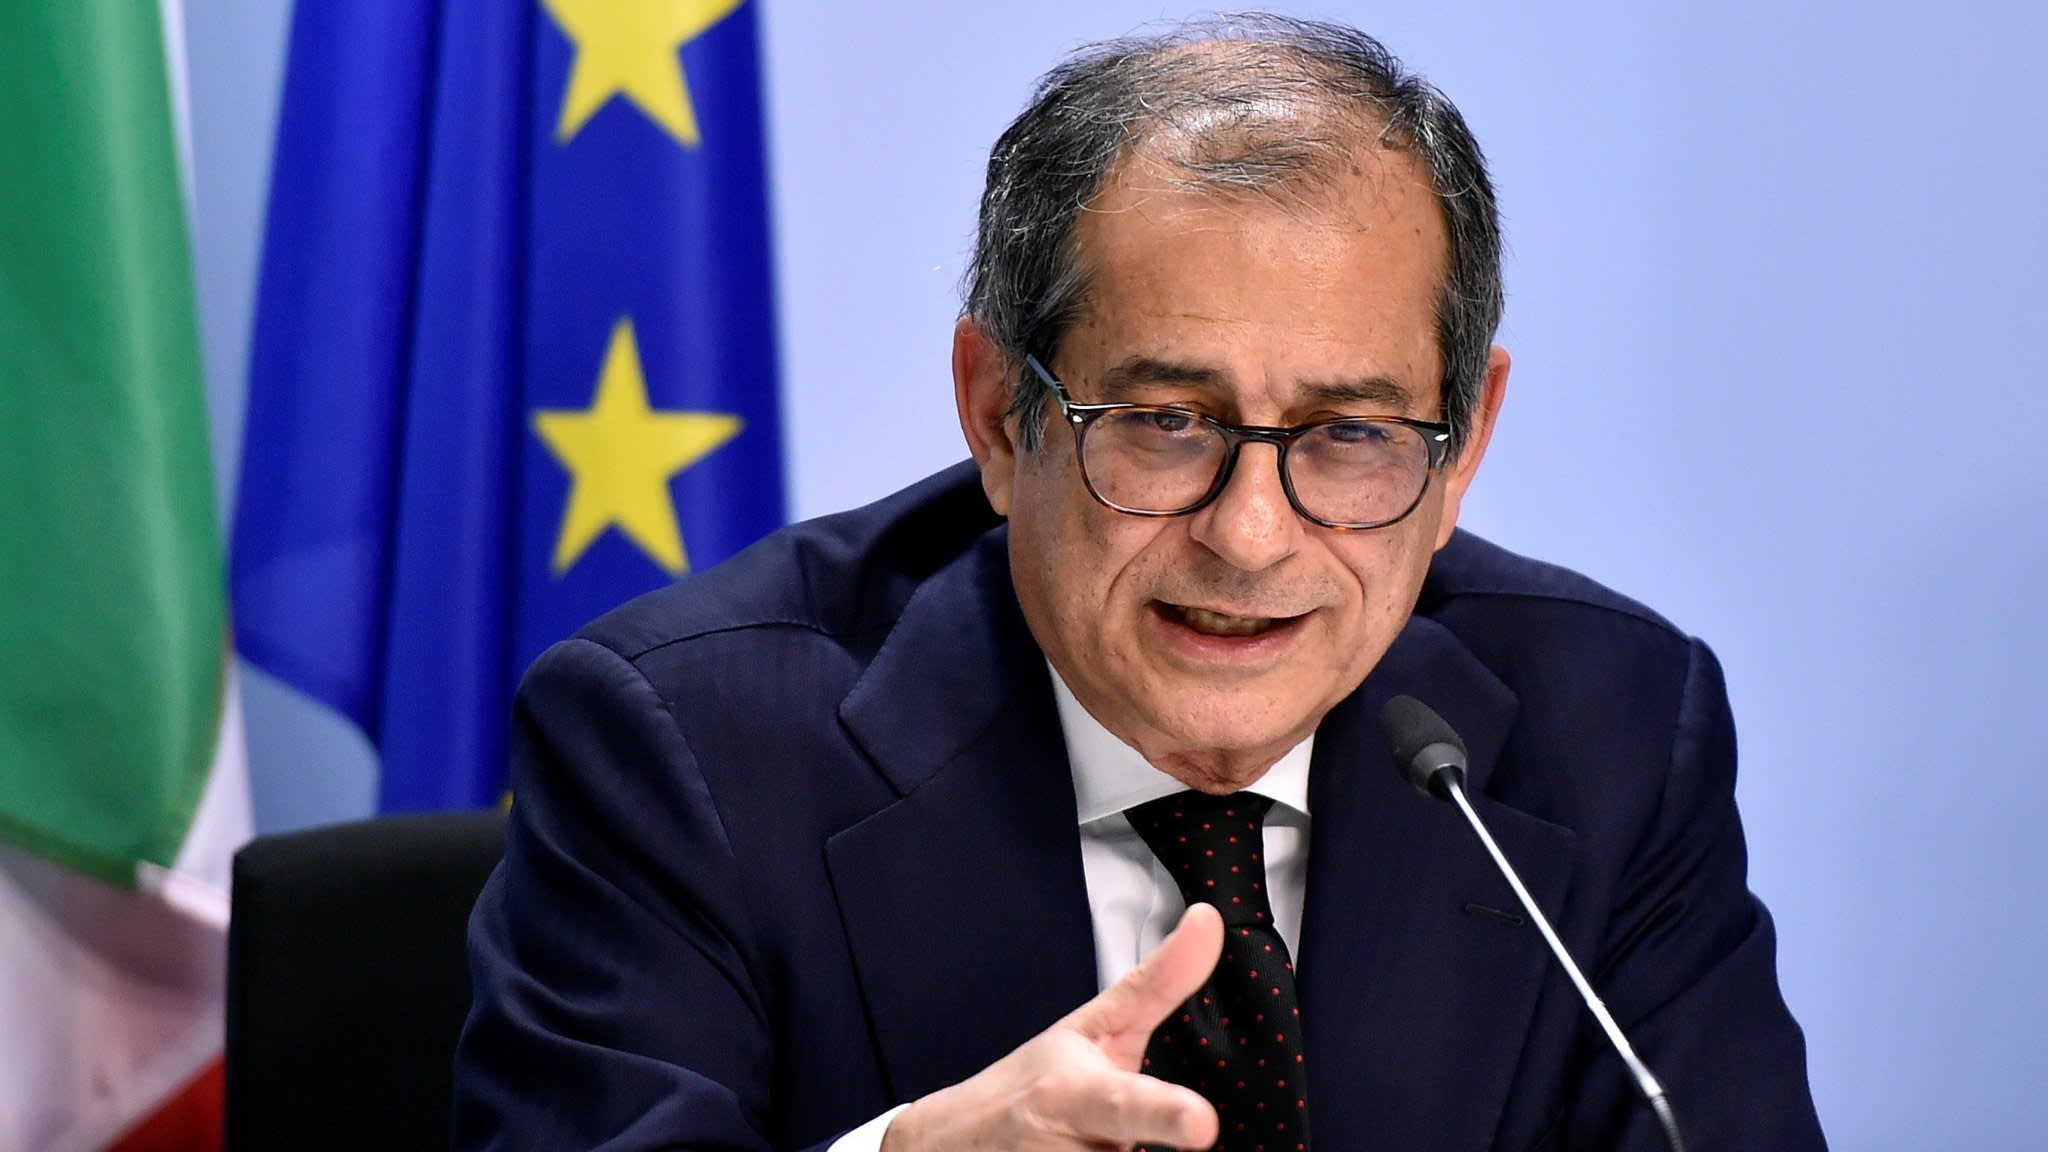 Brussels says Italy should face sanctions procedure over budget